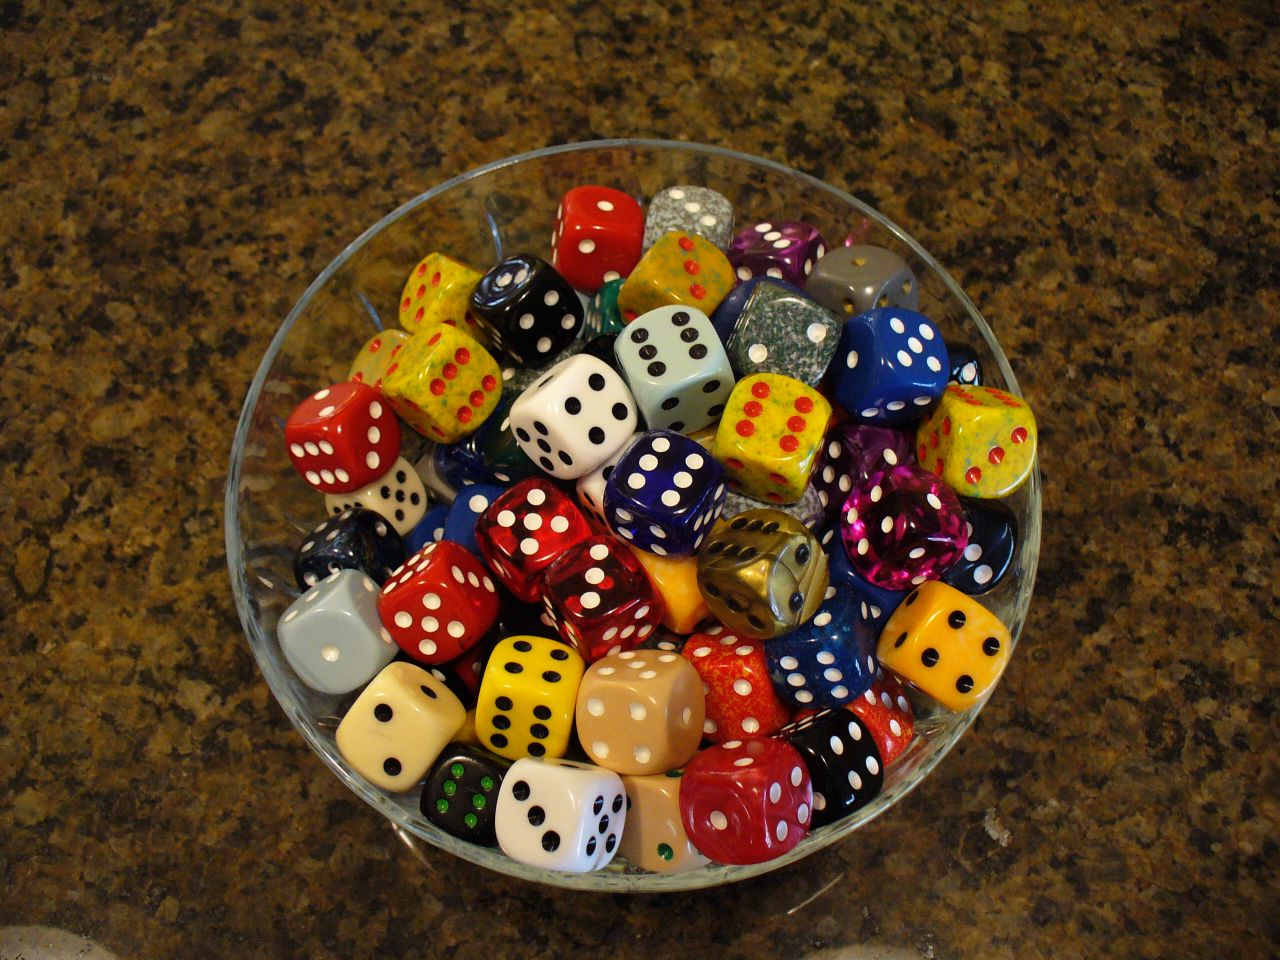 brief history of dice, weird bets, online casinos in the UK, gamingzion, cherry casino, gambling with dice, game of dice, GamingZion.com, online casinos, online gambling, paintings of dice, six sided dice, throwing dice, dice online, usage of dice, dice facts, dice sides, ancient dice games